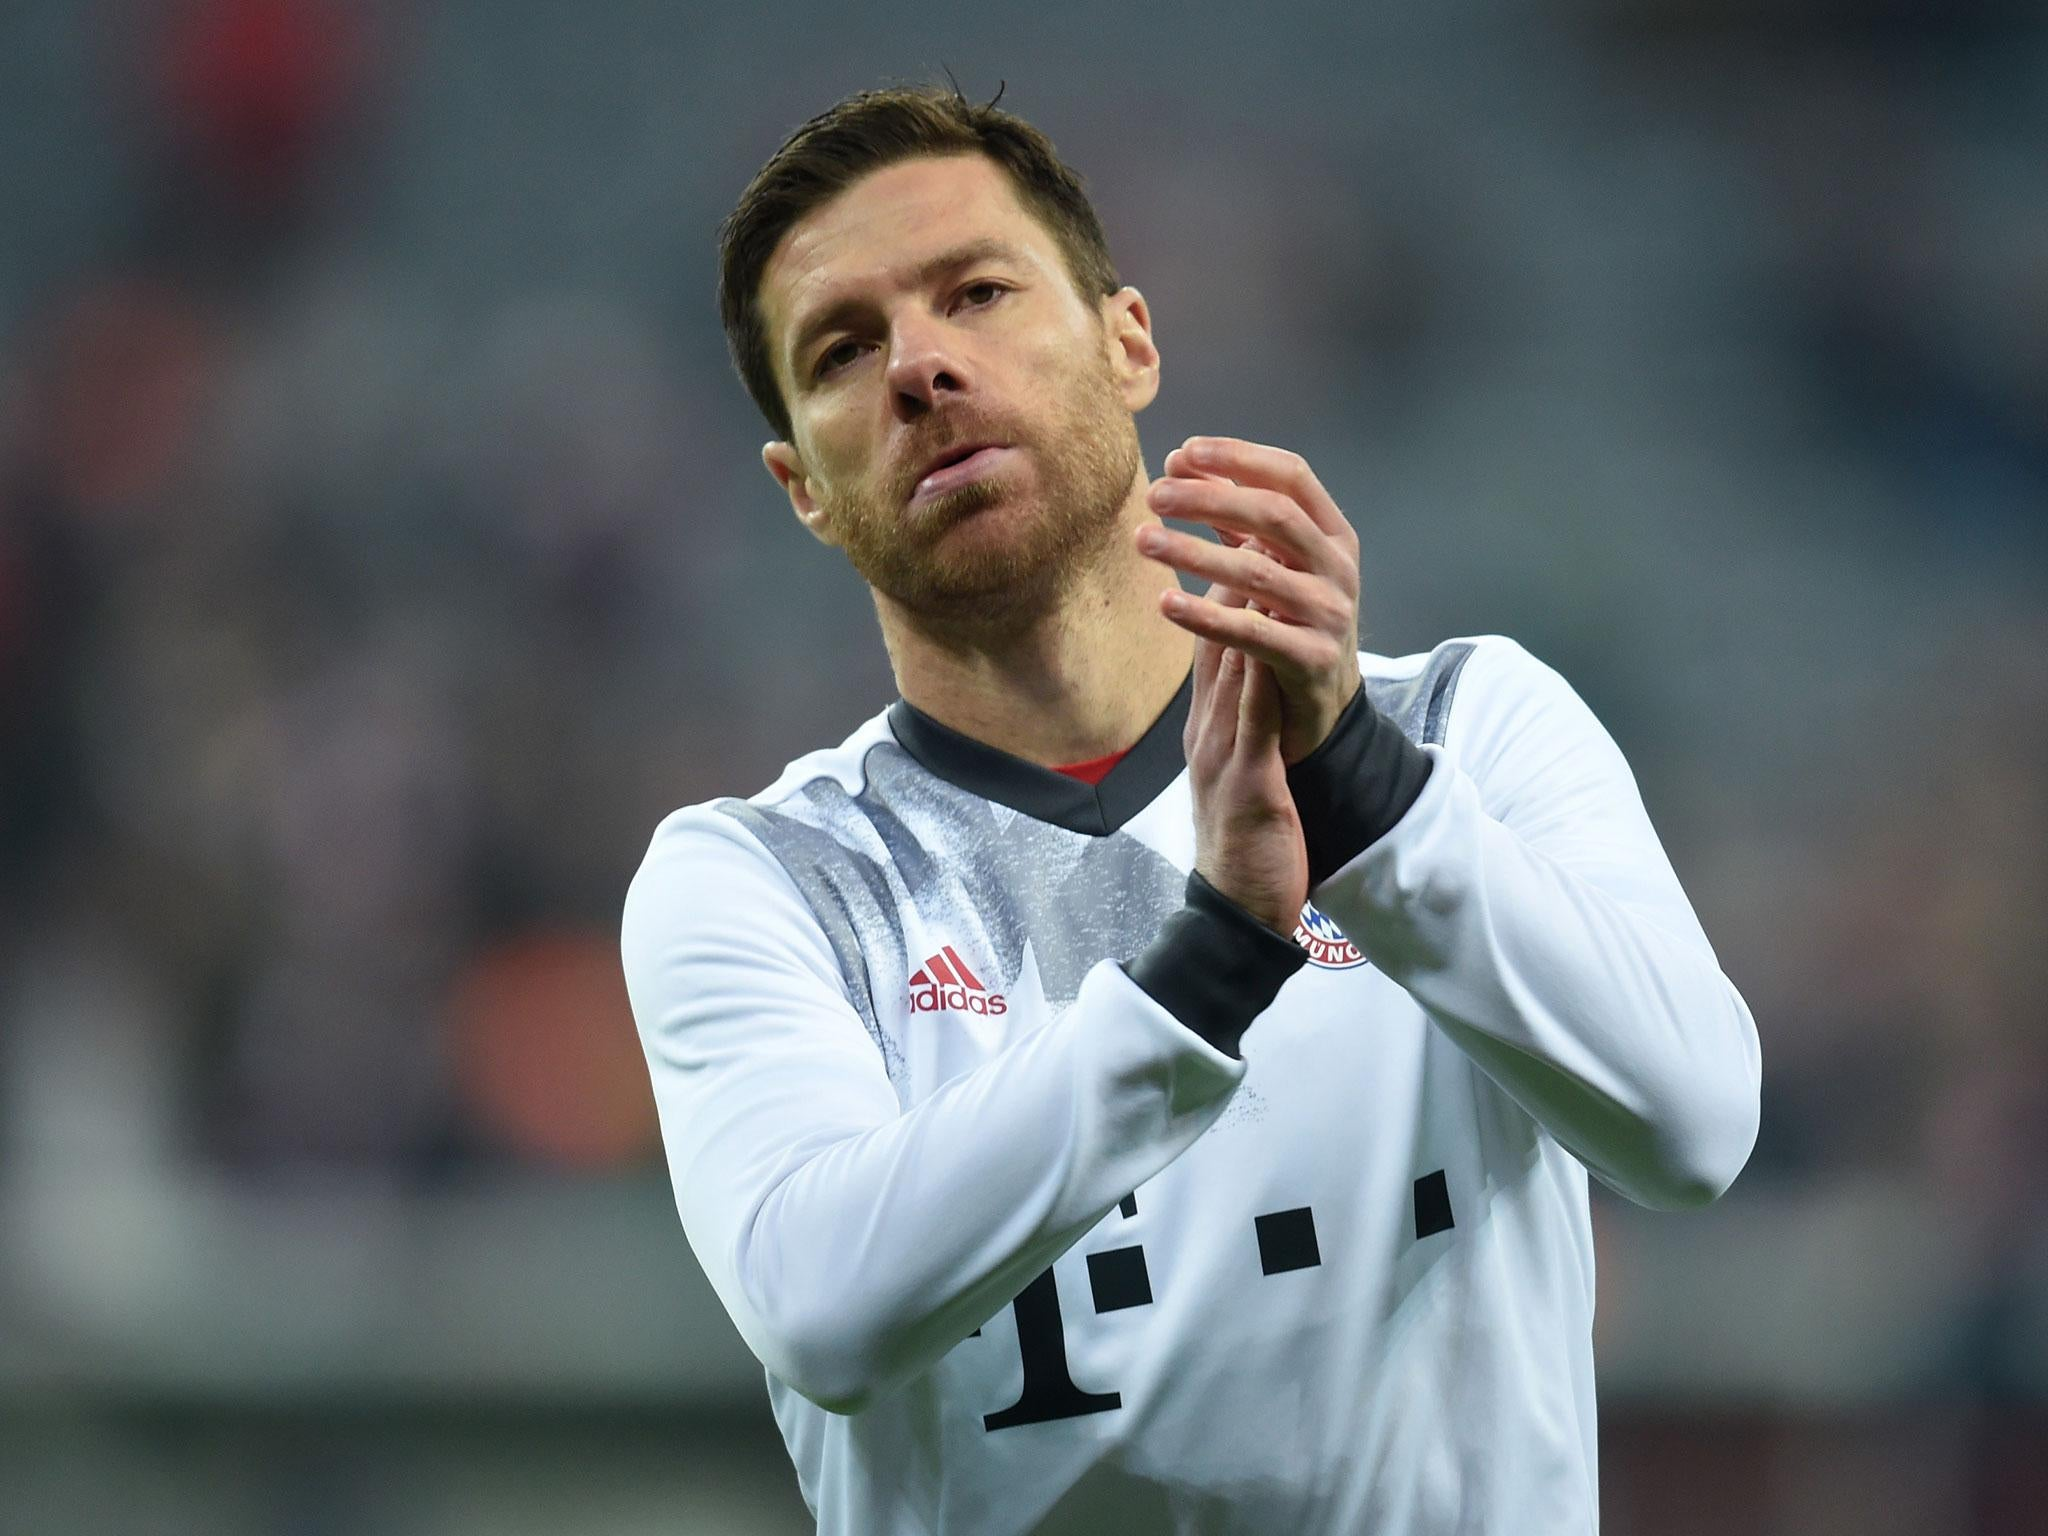 Former Liverpool midfielder Xabi Alonso announces retirement from